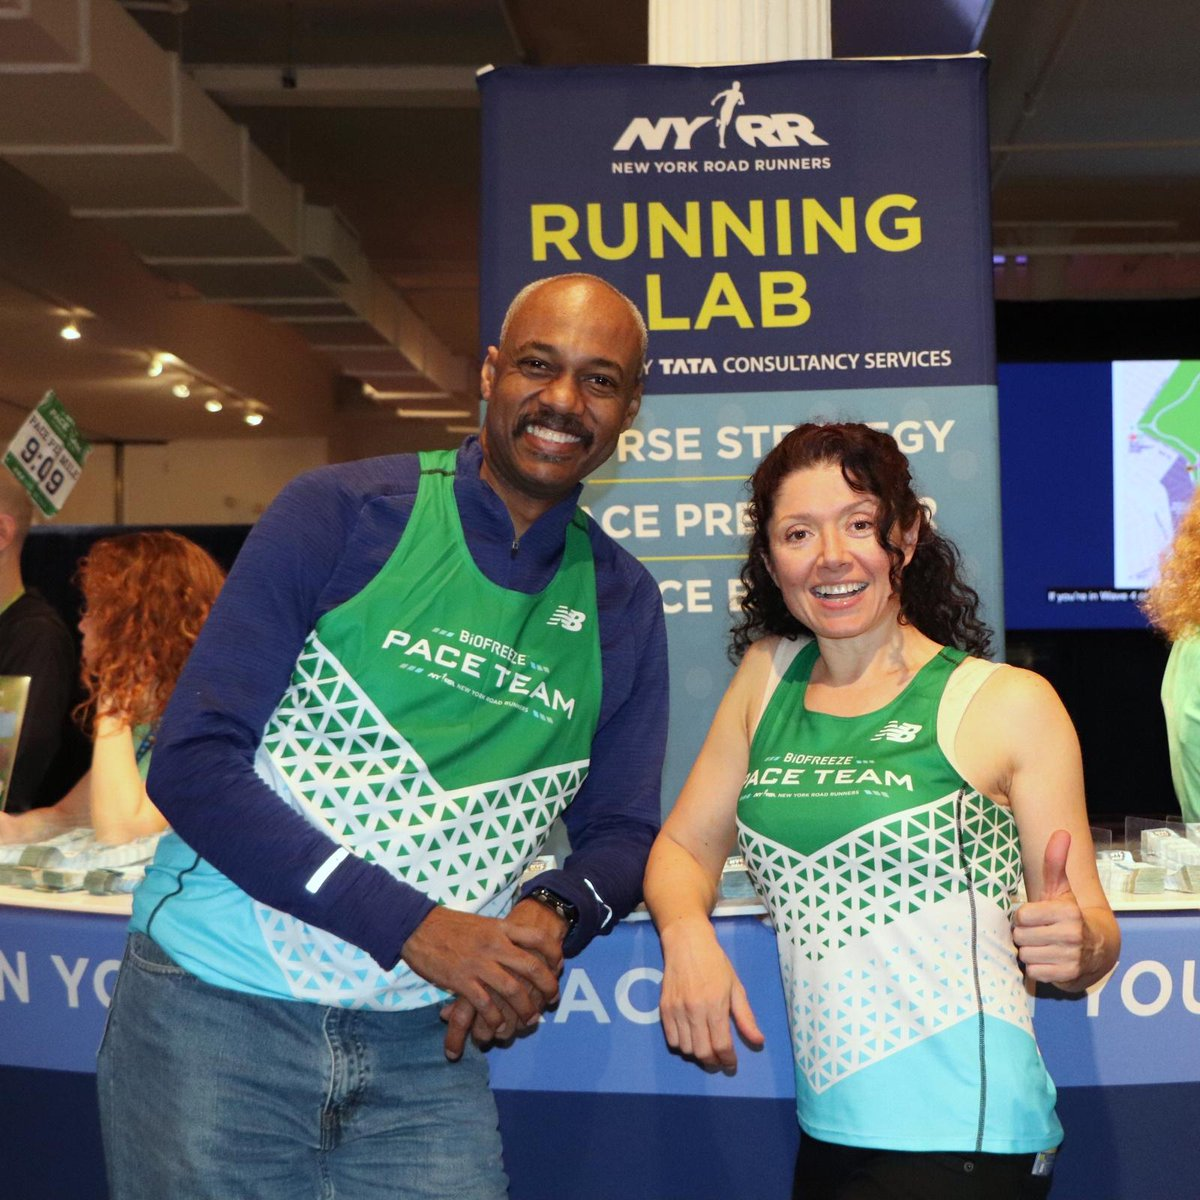 Ready to race your way to a big PR at the #UnitedNYCHalf? Get a little help on race day from the NYRR Pace Team powered by @Biofreeze. Keep an eye out for these singlets so you can find a pacer to help guide you towards achieving your goals and #FeelNoLimits #partner